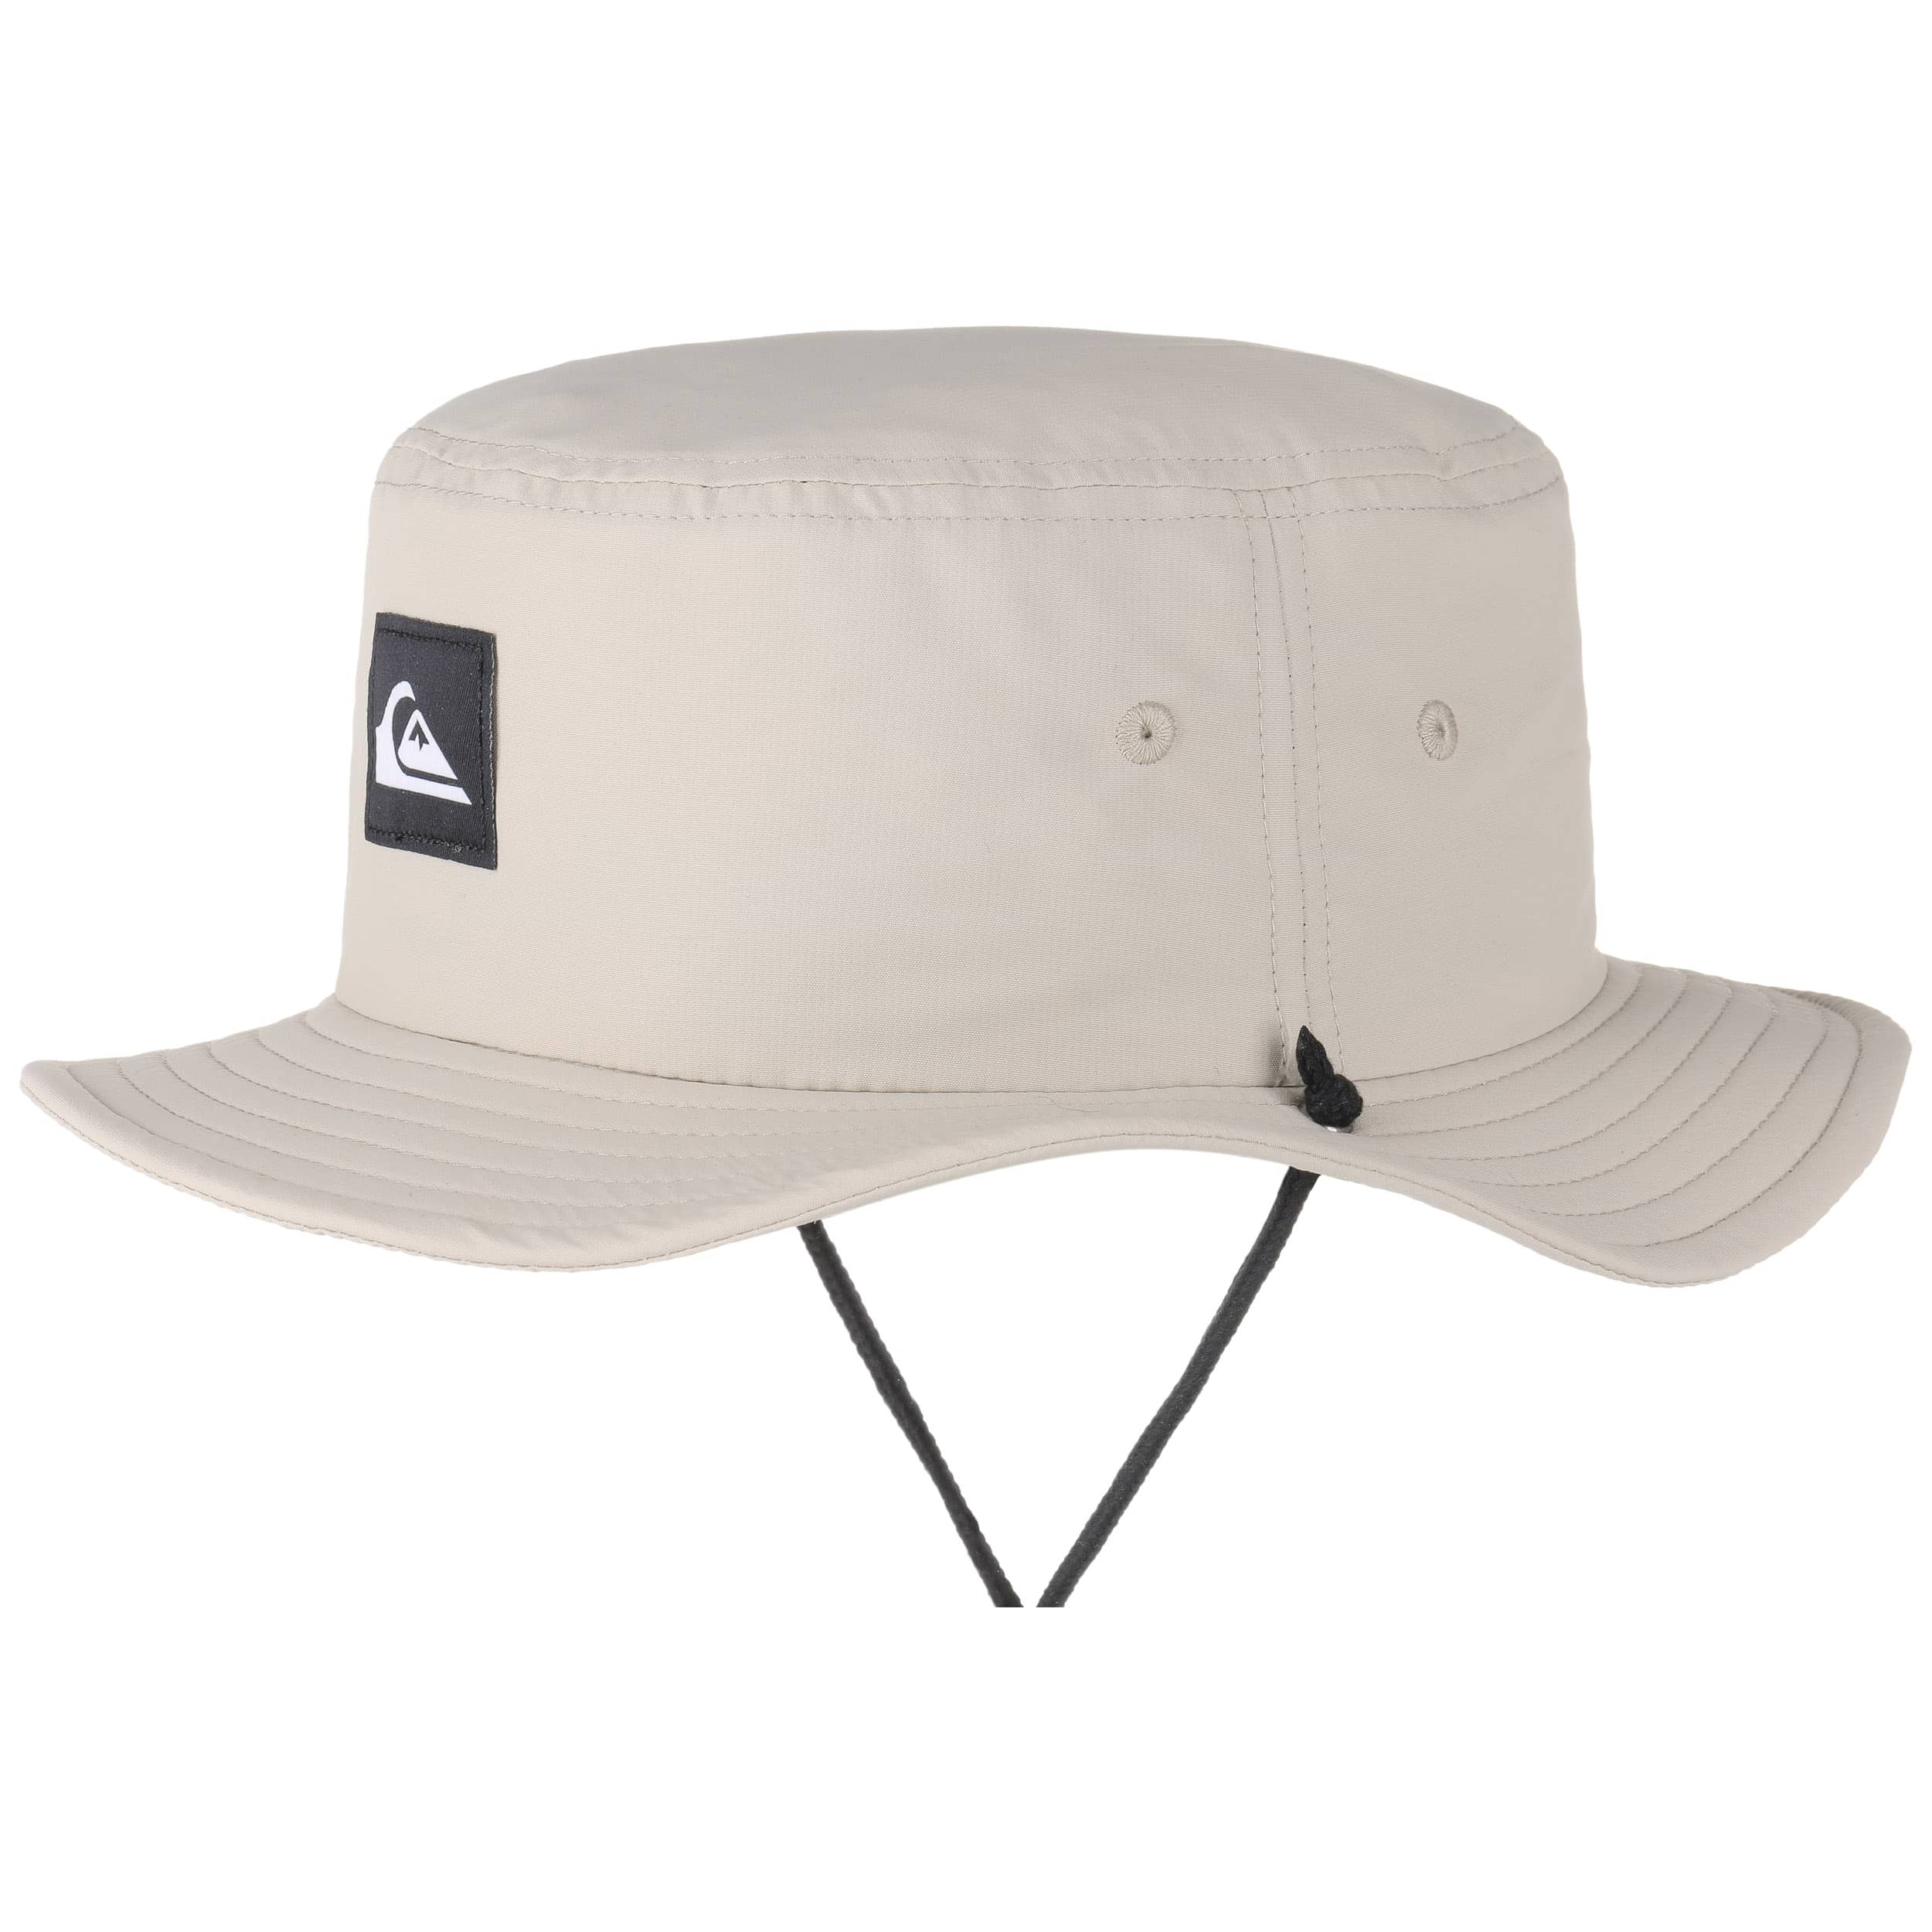 a5a601fc2a262 ... official bushmaster light fishing hat by quiksilver oatmeal 5 50254  5a0ca